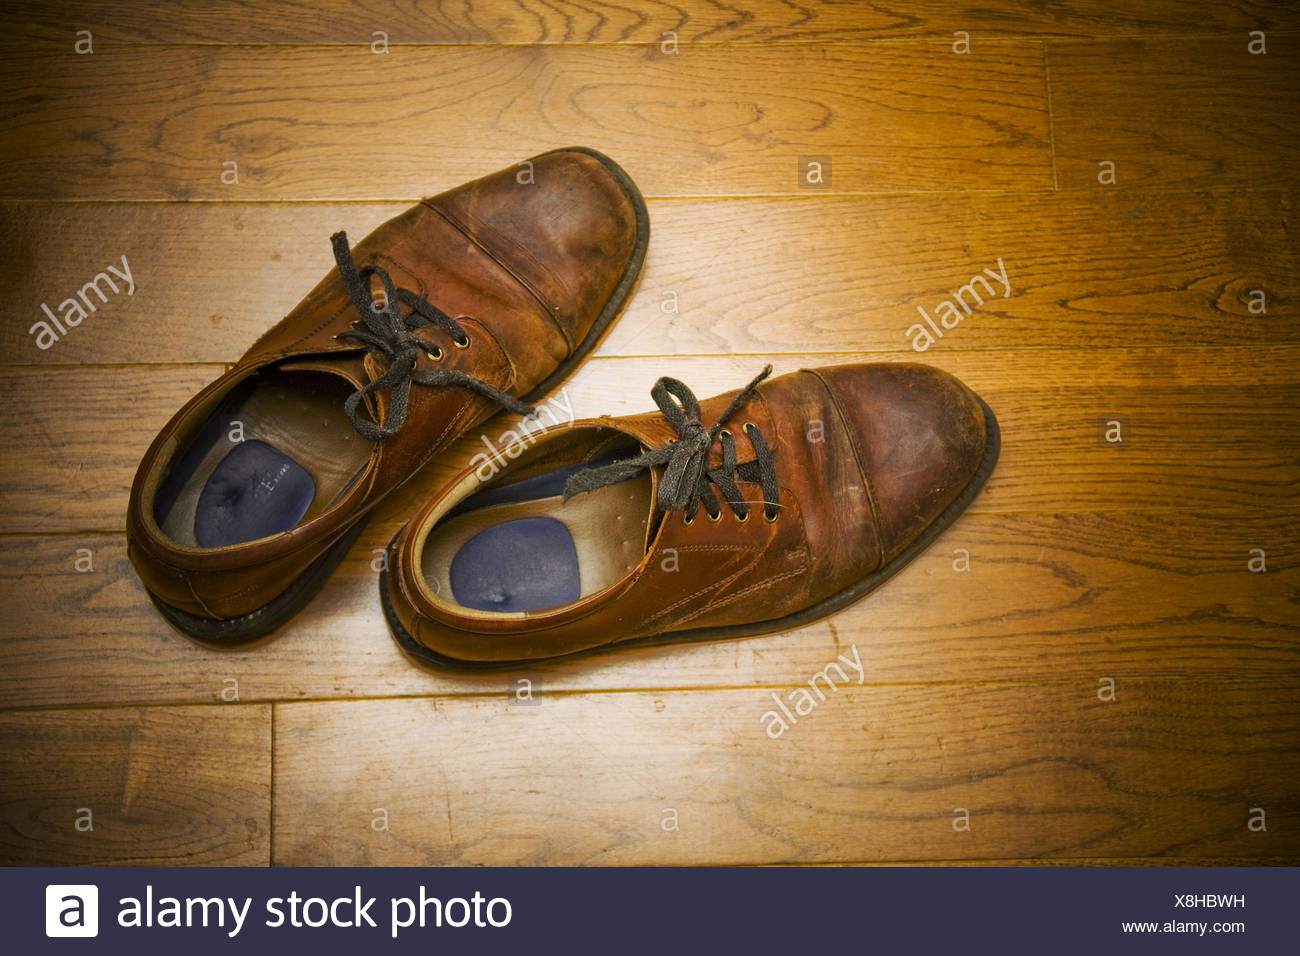 A man´s pair of shoes. - Stock Image